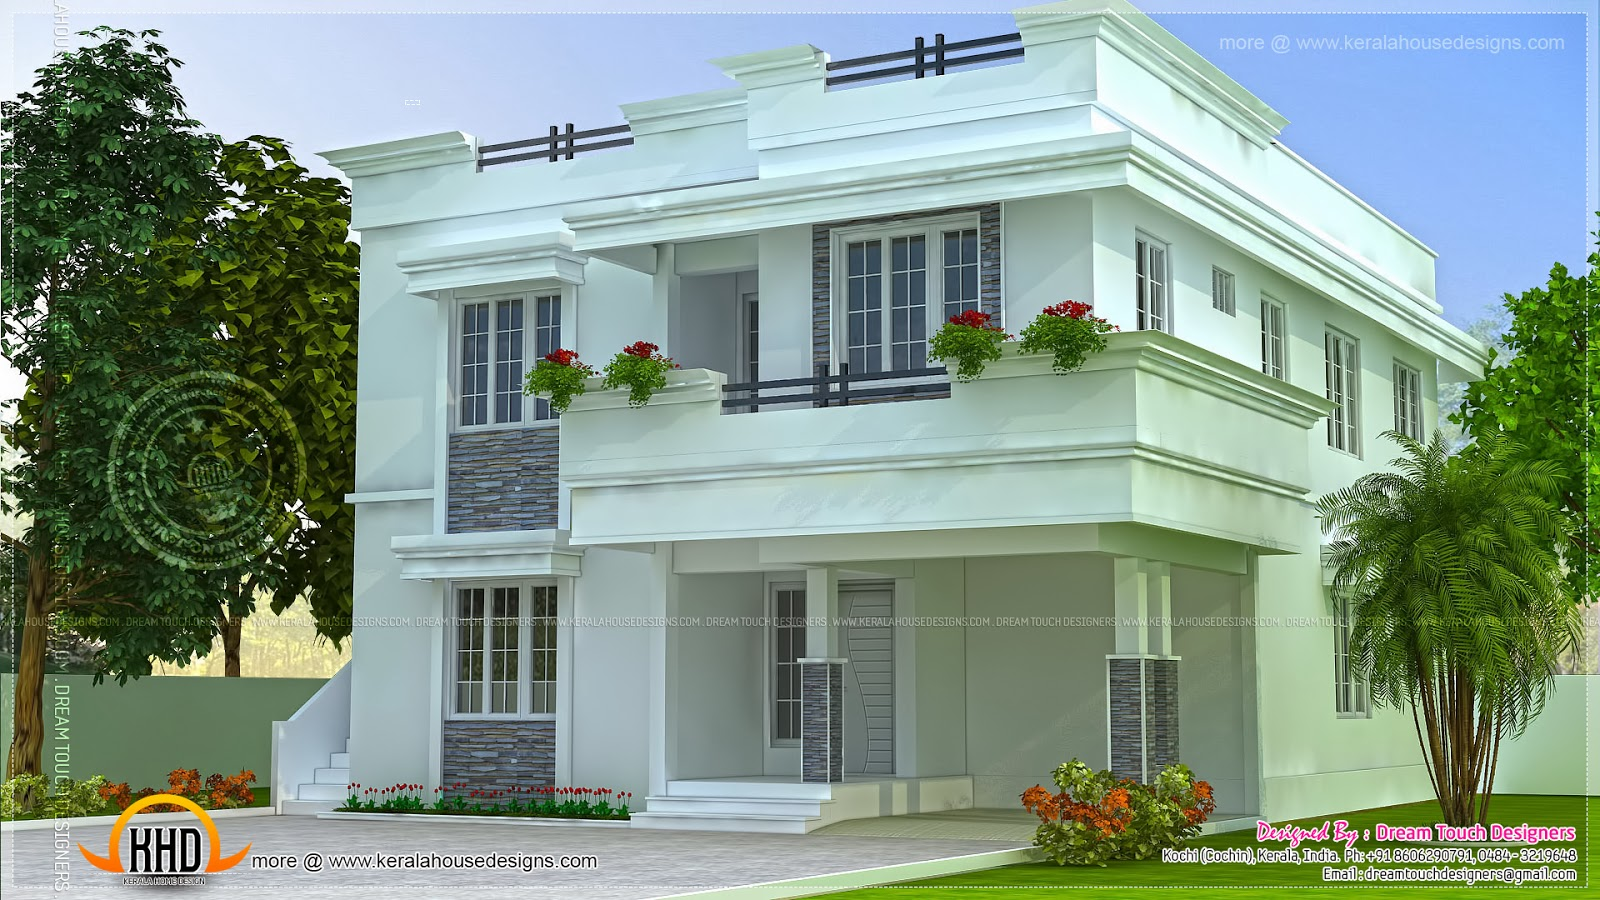 Modern Beautiful Home Design Kerala Home Design And